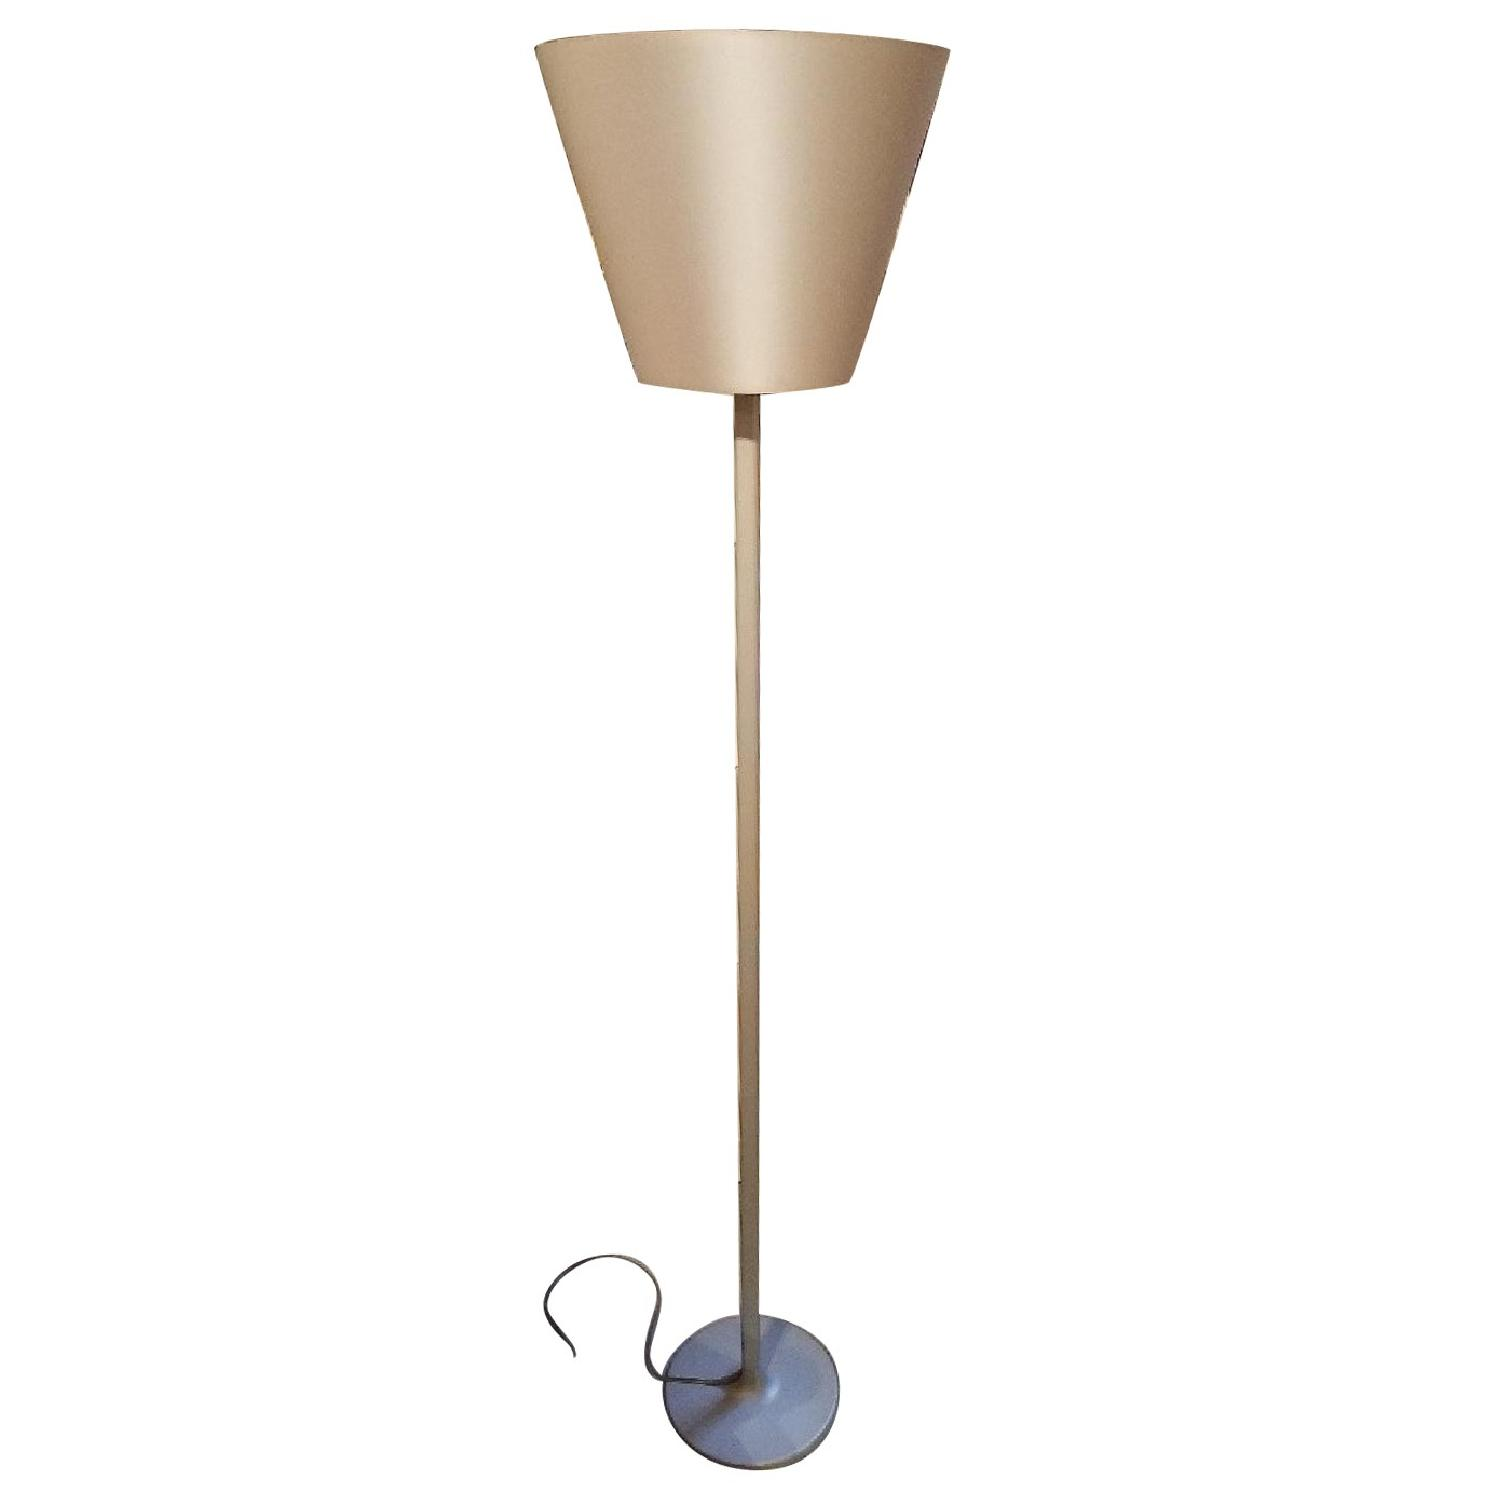 Artemide Melampo Dimmable Floor Lamps in Silver